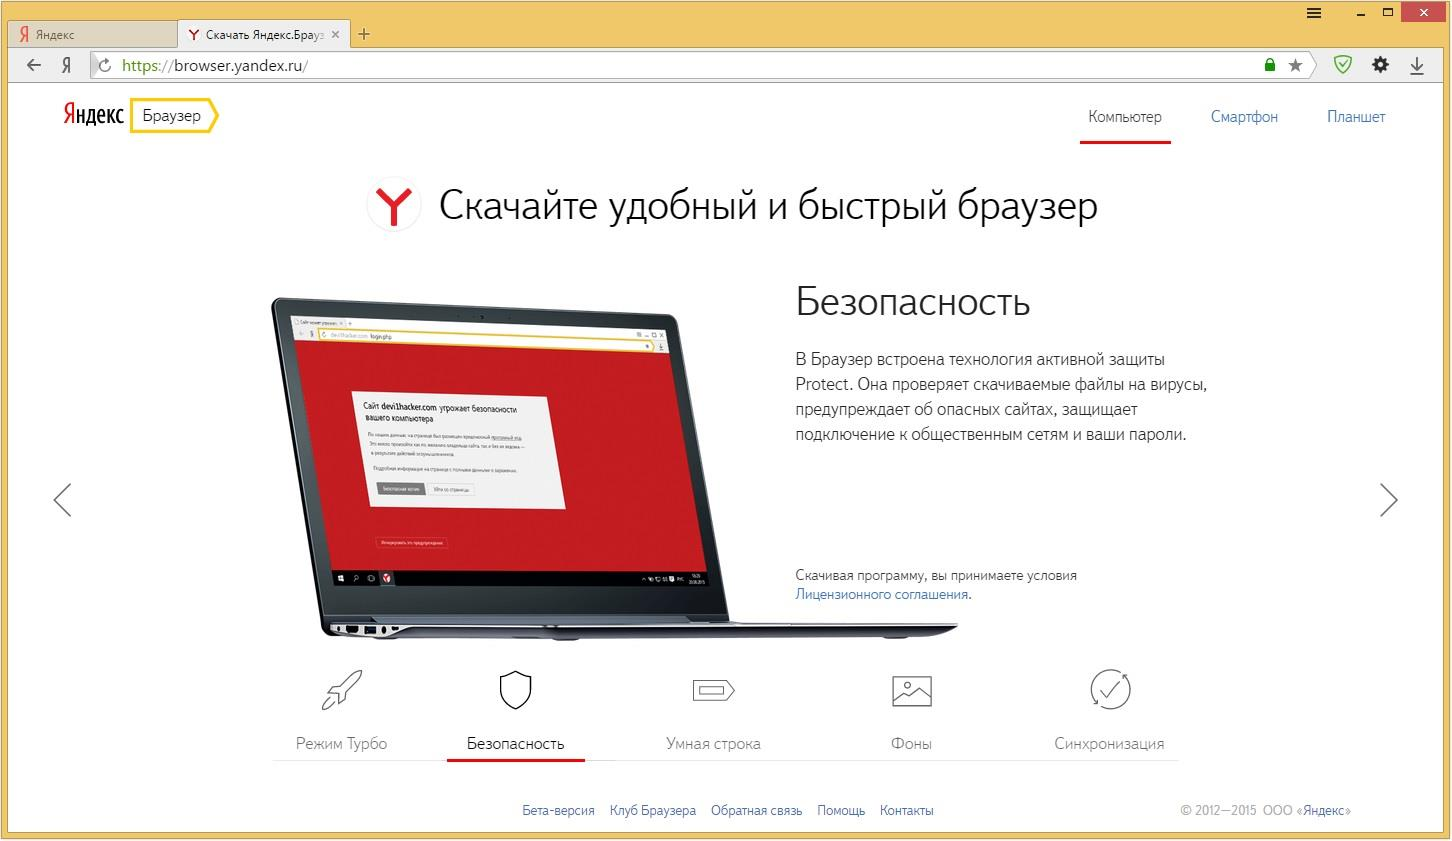 YANDEX БРАУЗЕР ДЛЯ WINDOWS 7